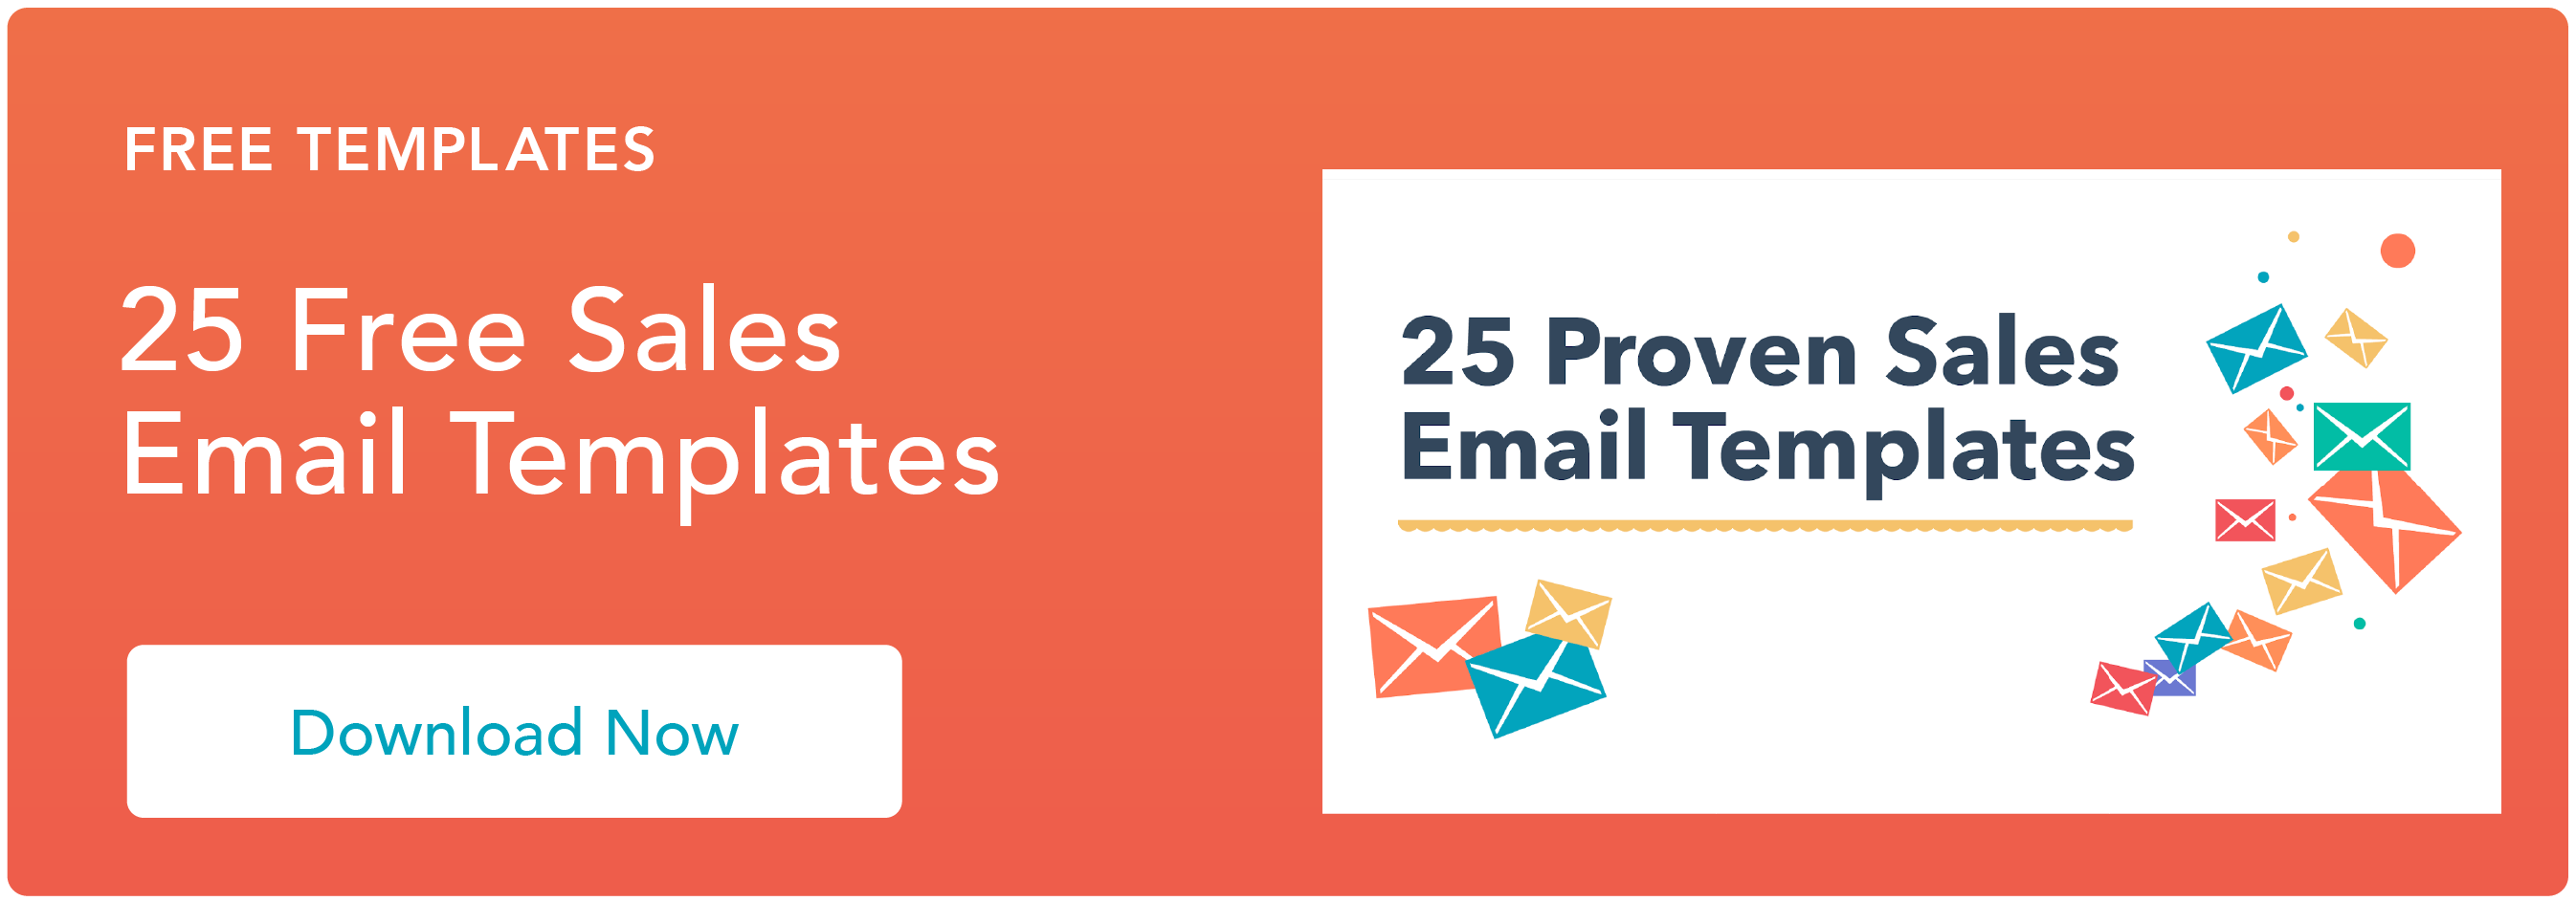 5 Recap Email Templates To Use After Connect Discovery And Demo Calls